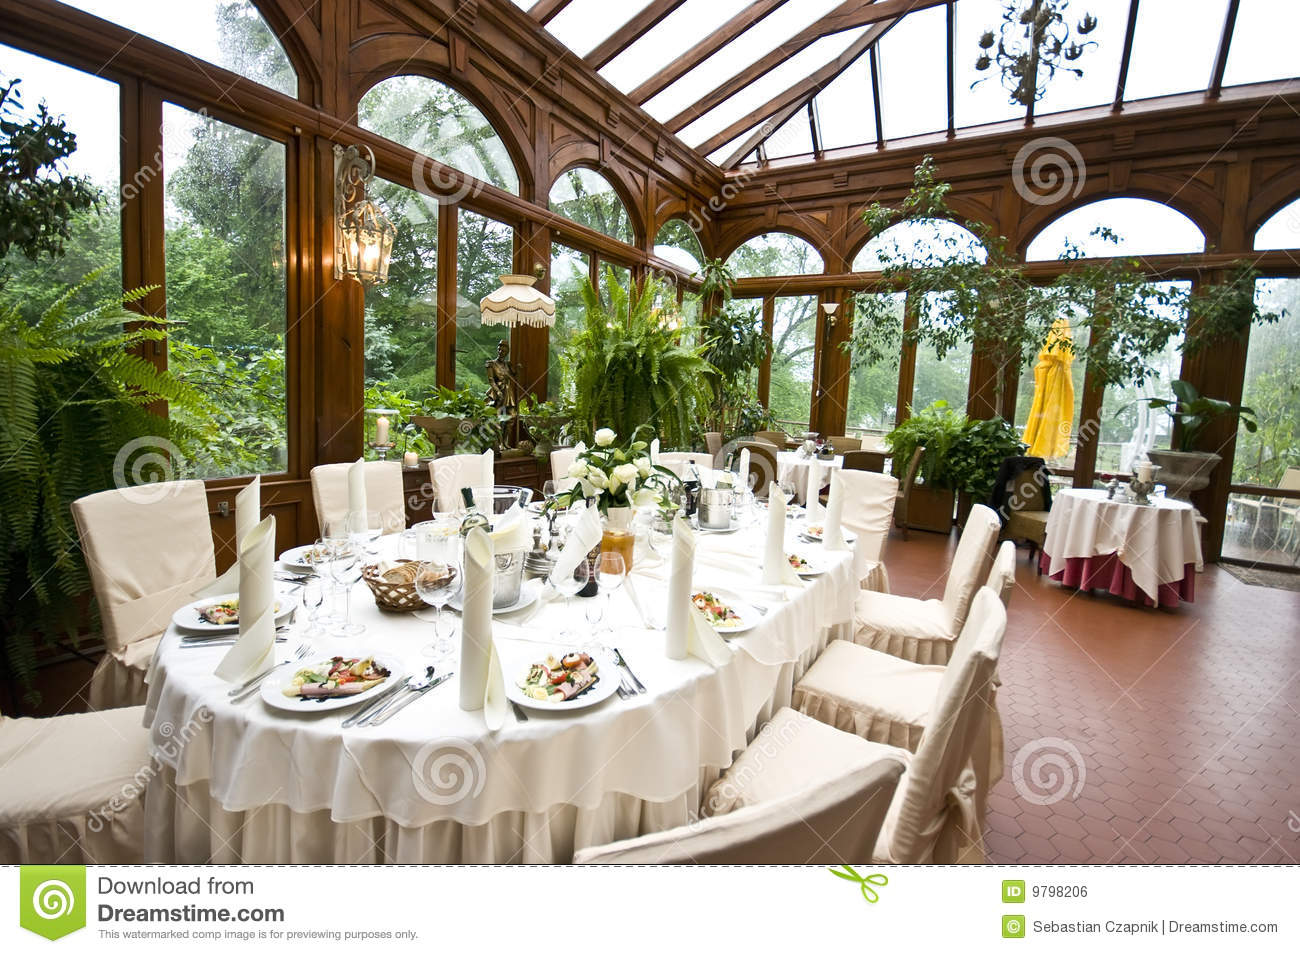 Indoor Wedding Venue Royalty Free Stock Photo: Wedding Table Stock Photo. Image Of Laid, Luxurious